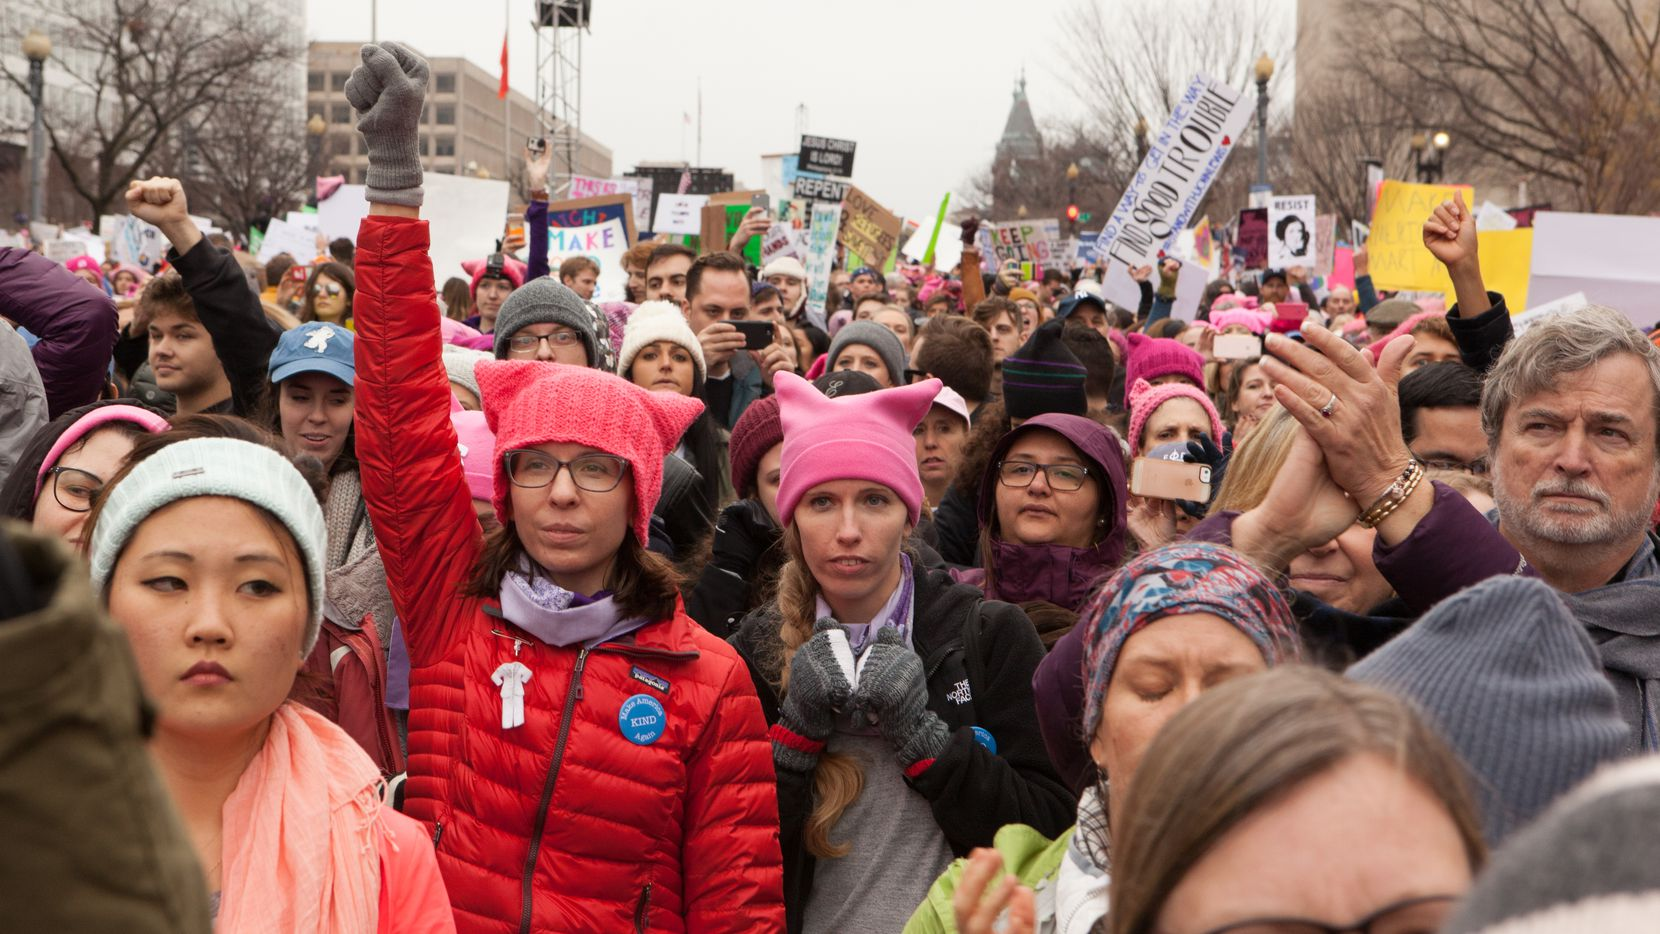 Women march in Washington D.C. Saturday January 21, 2017 following the inauguration of President Donald Trump.